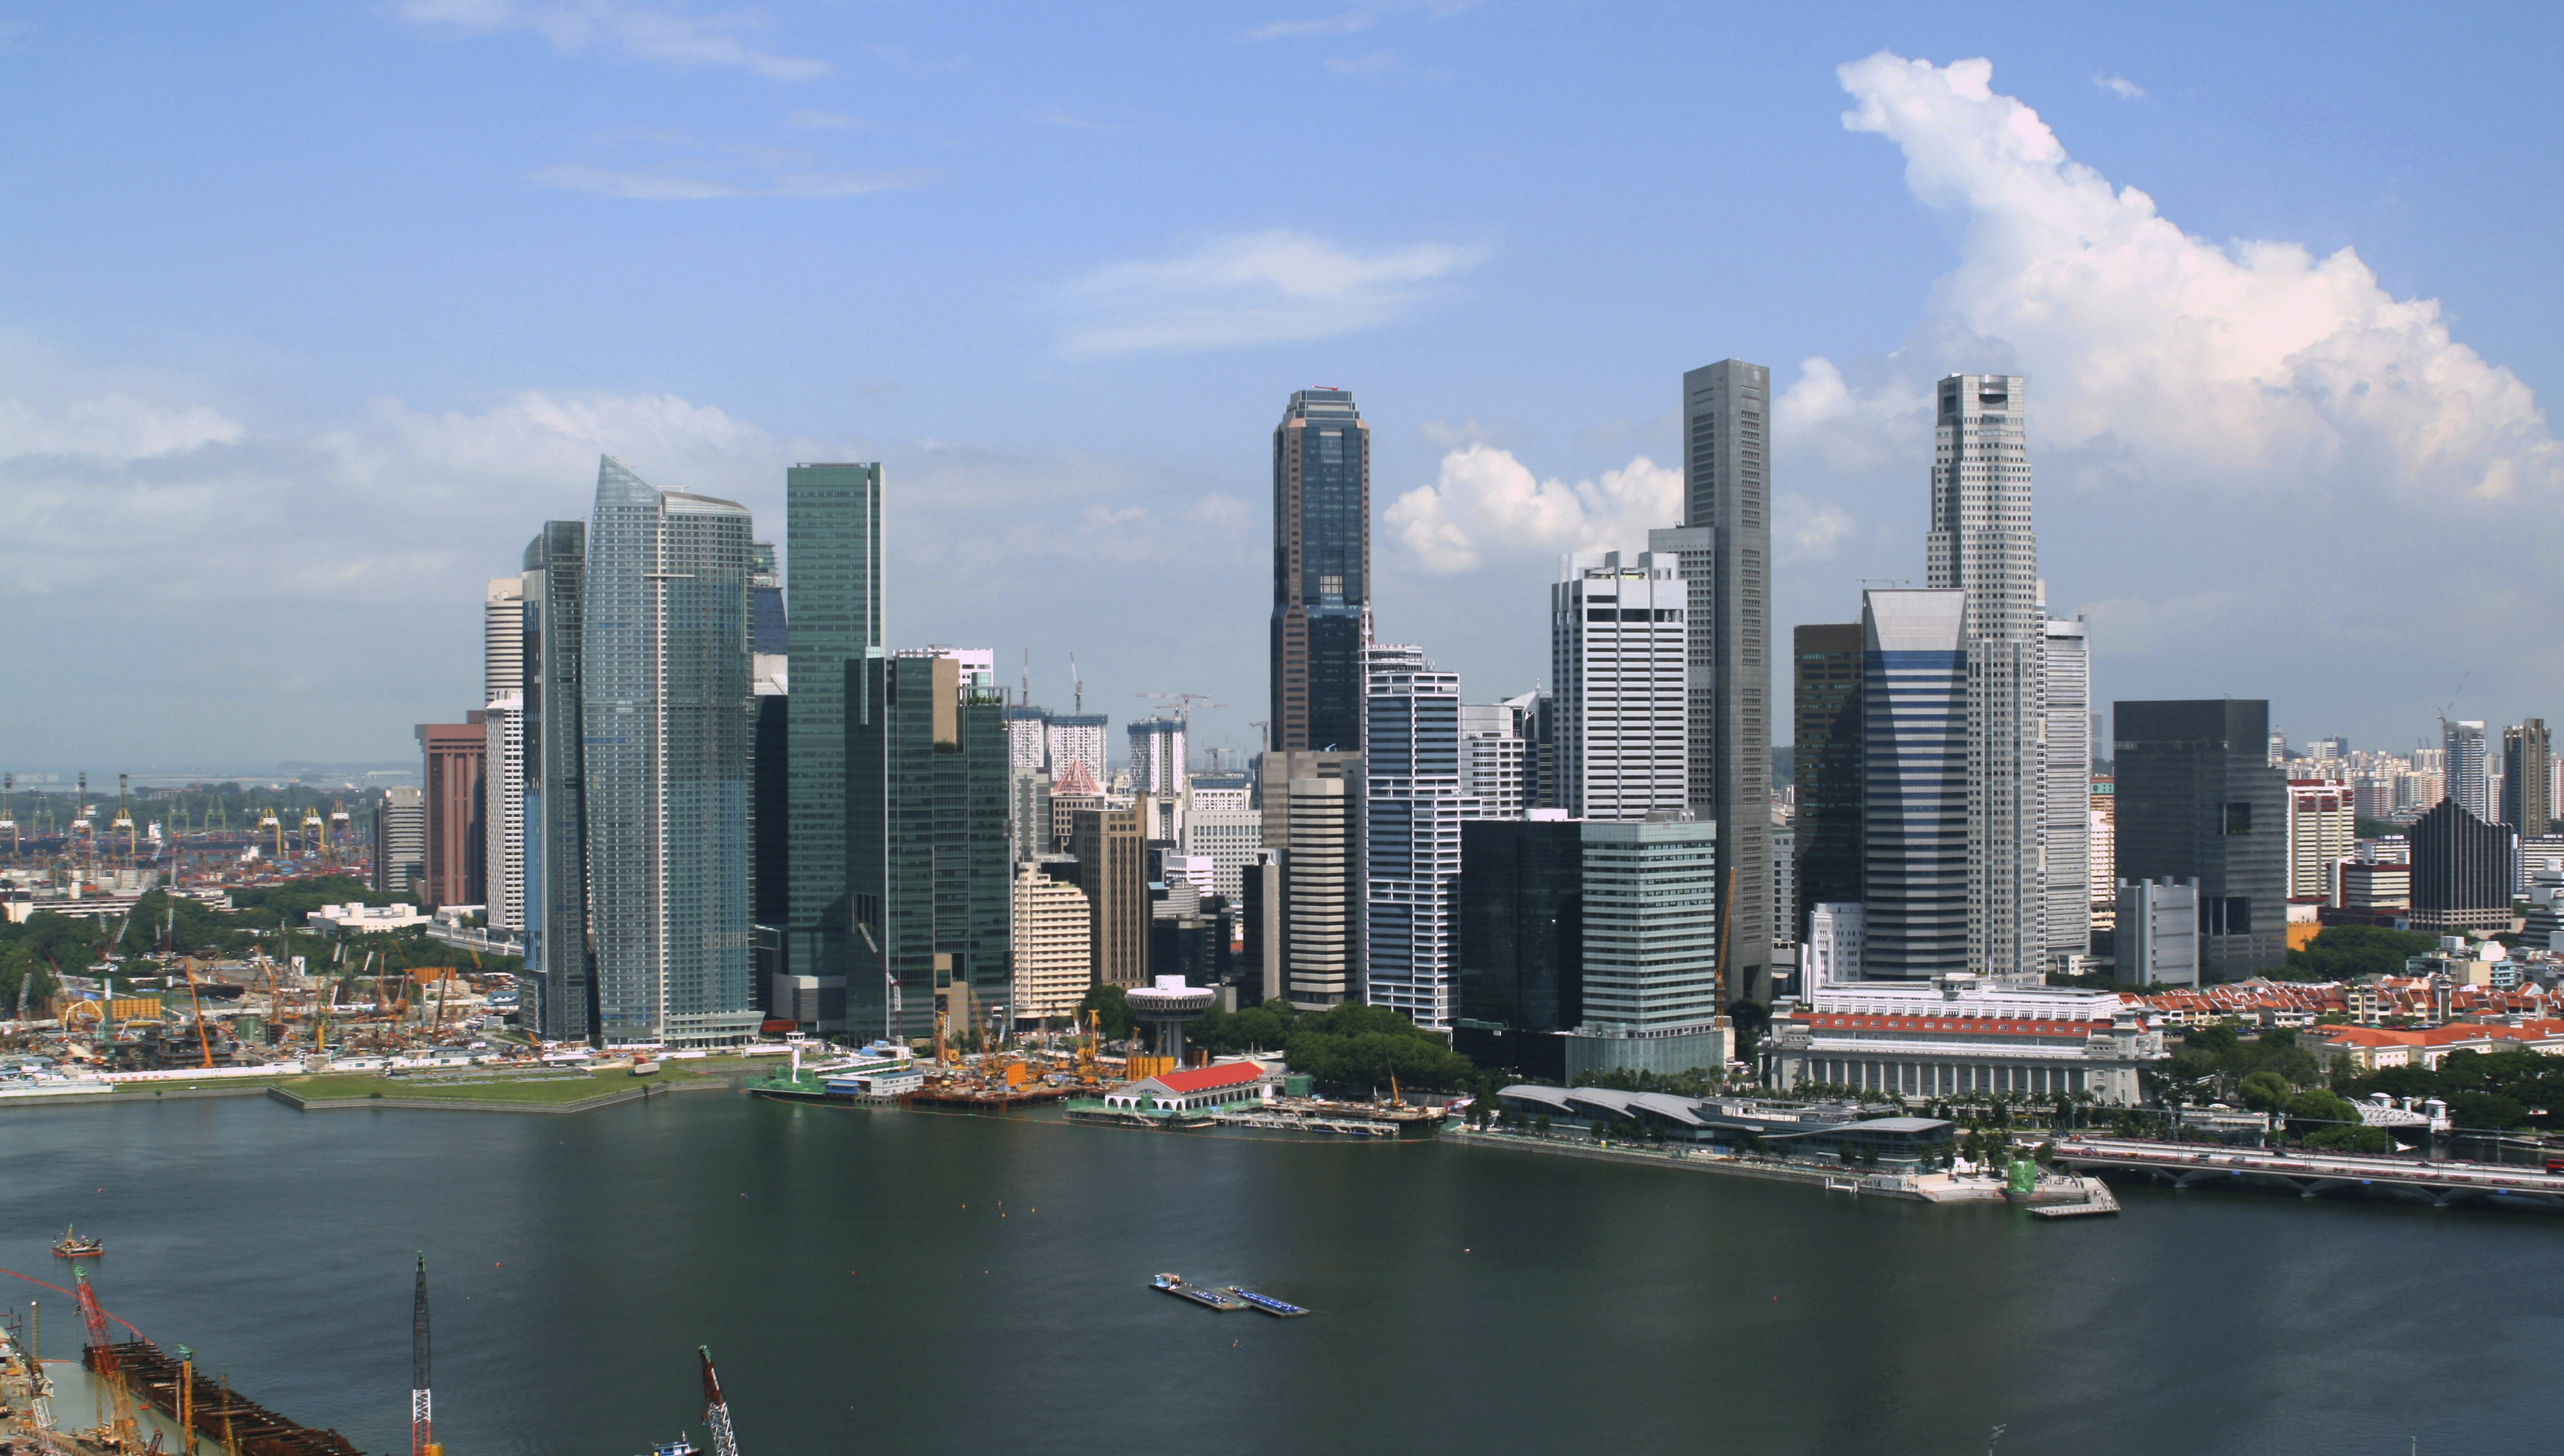 Digital transformation: The skyline of Singapore on a sunny day.